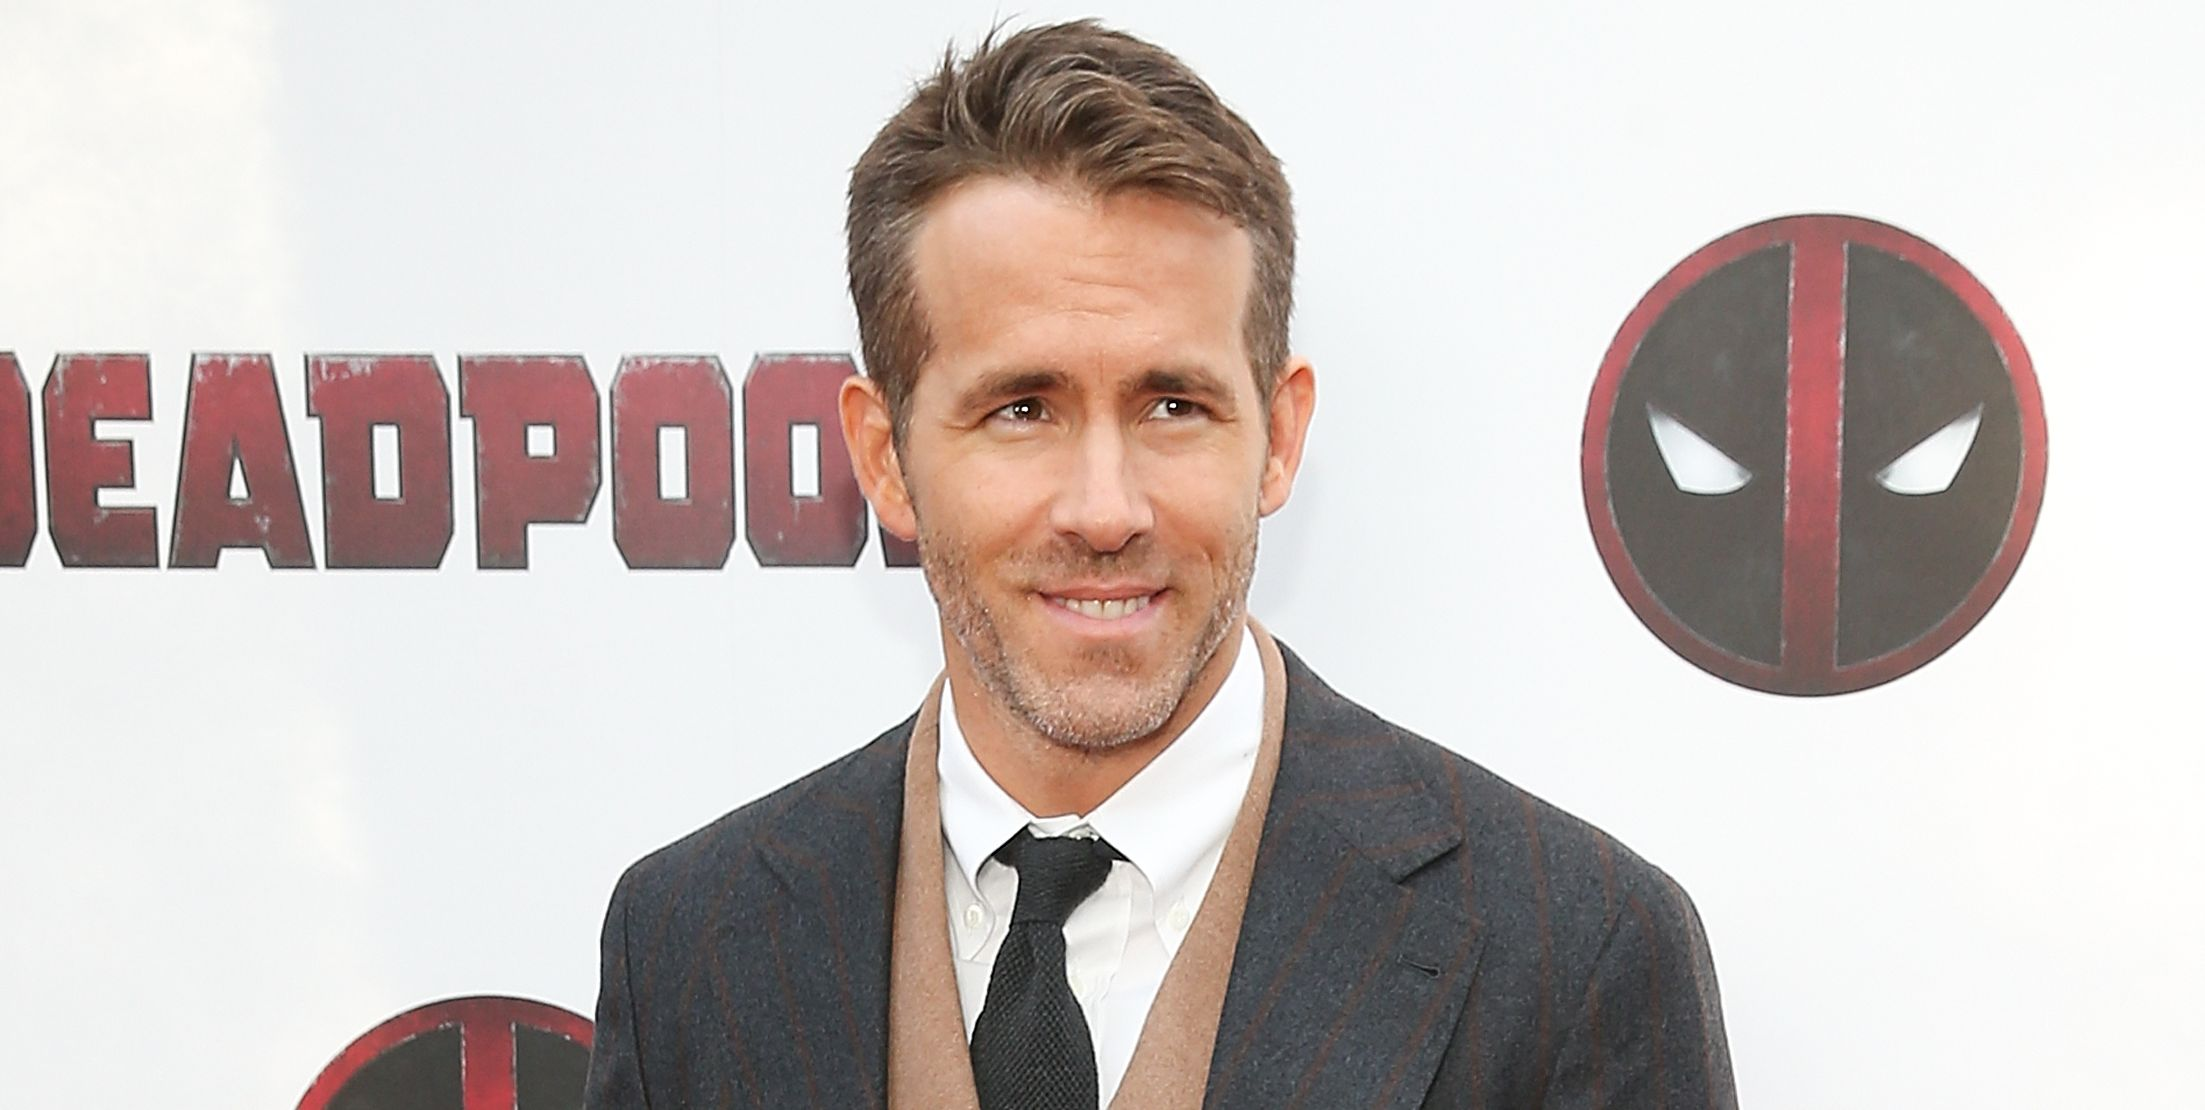 Ryan Reynolds Just Tried A Tricky Tailoring Move - And Won